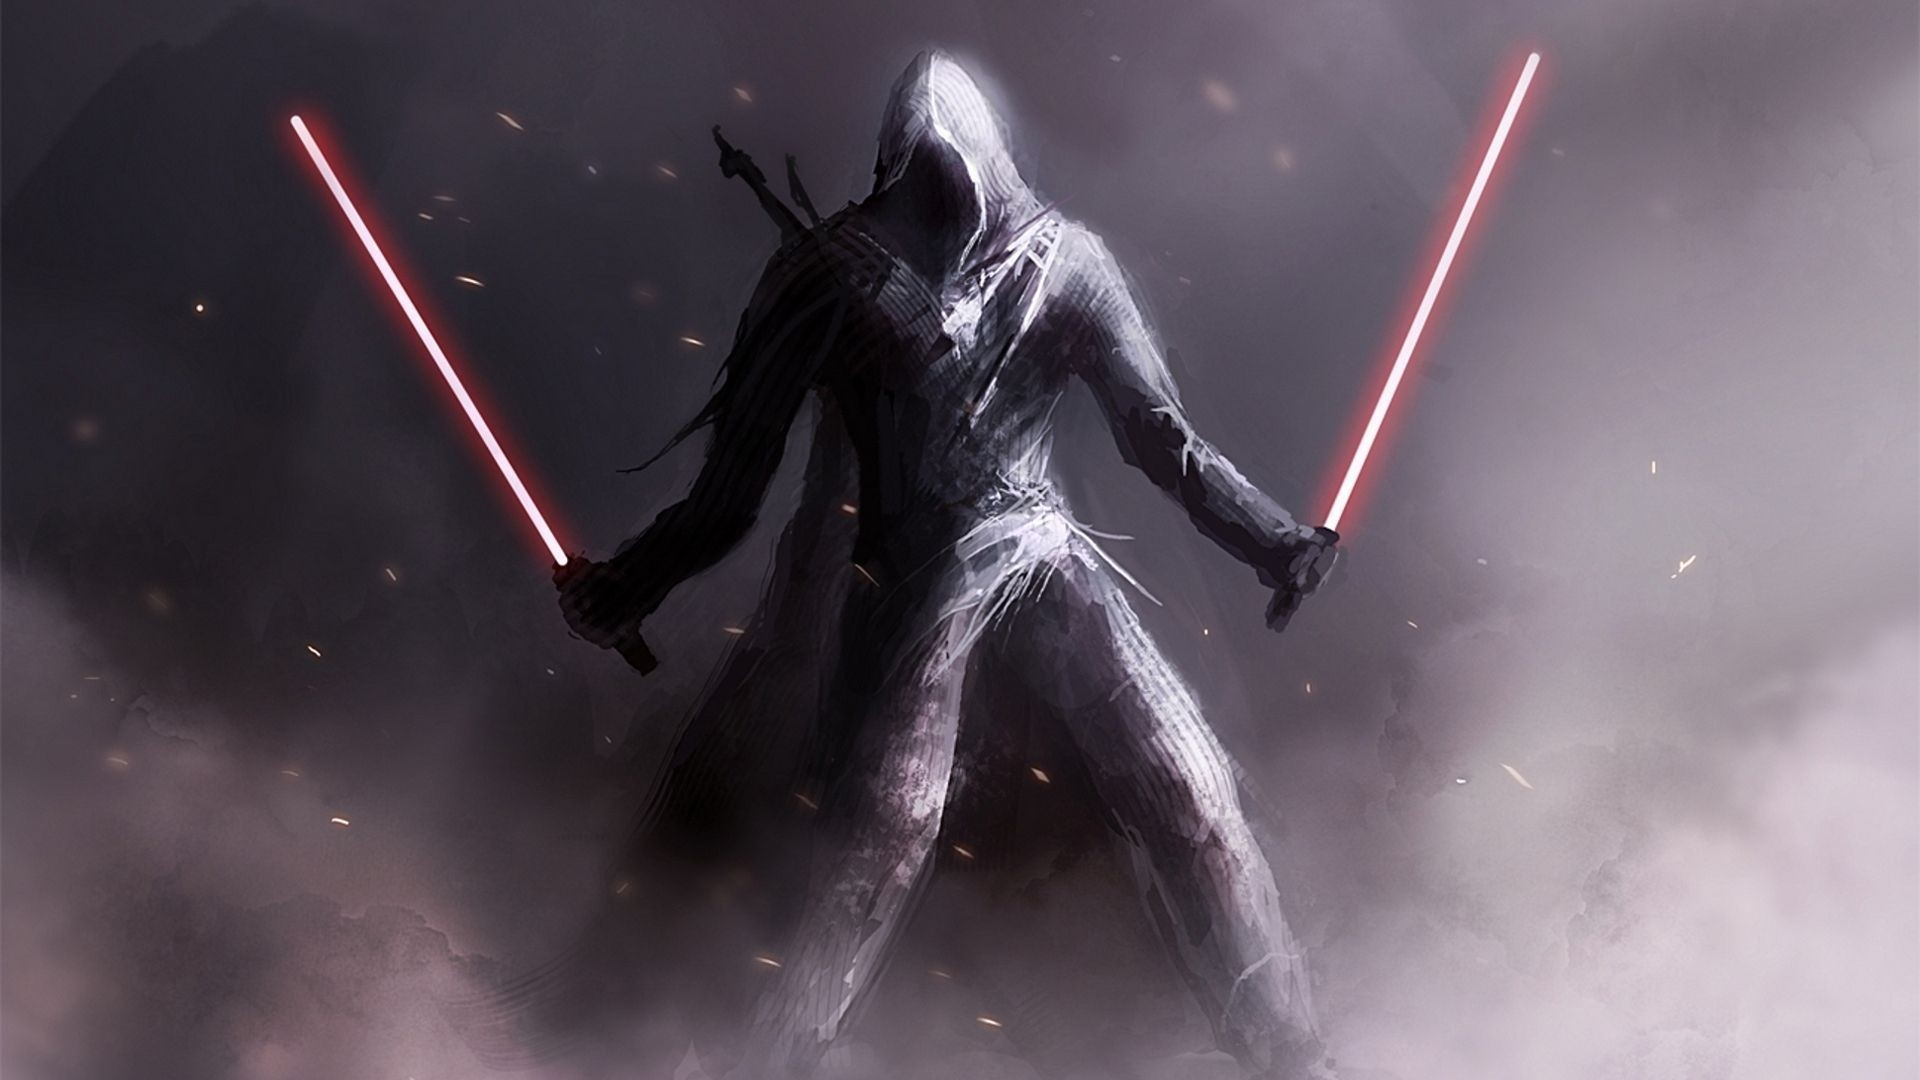 Res: 1920x1080, Star Wars Sith Wallpaper Background Is Cool Wallpapers